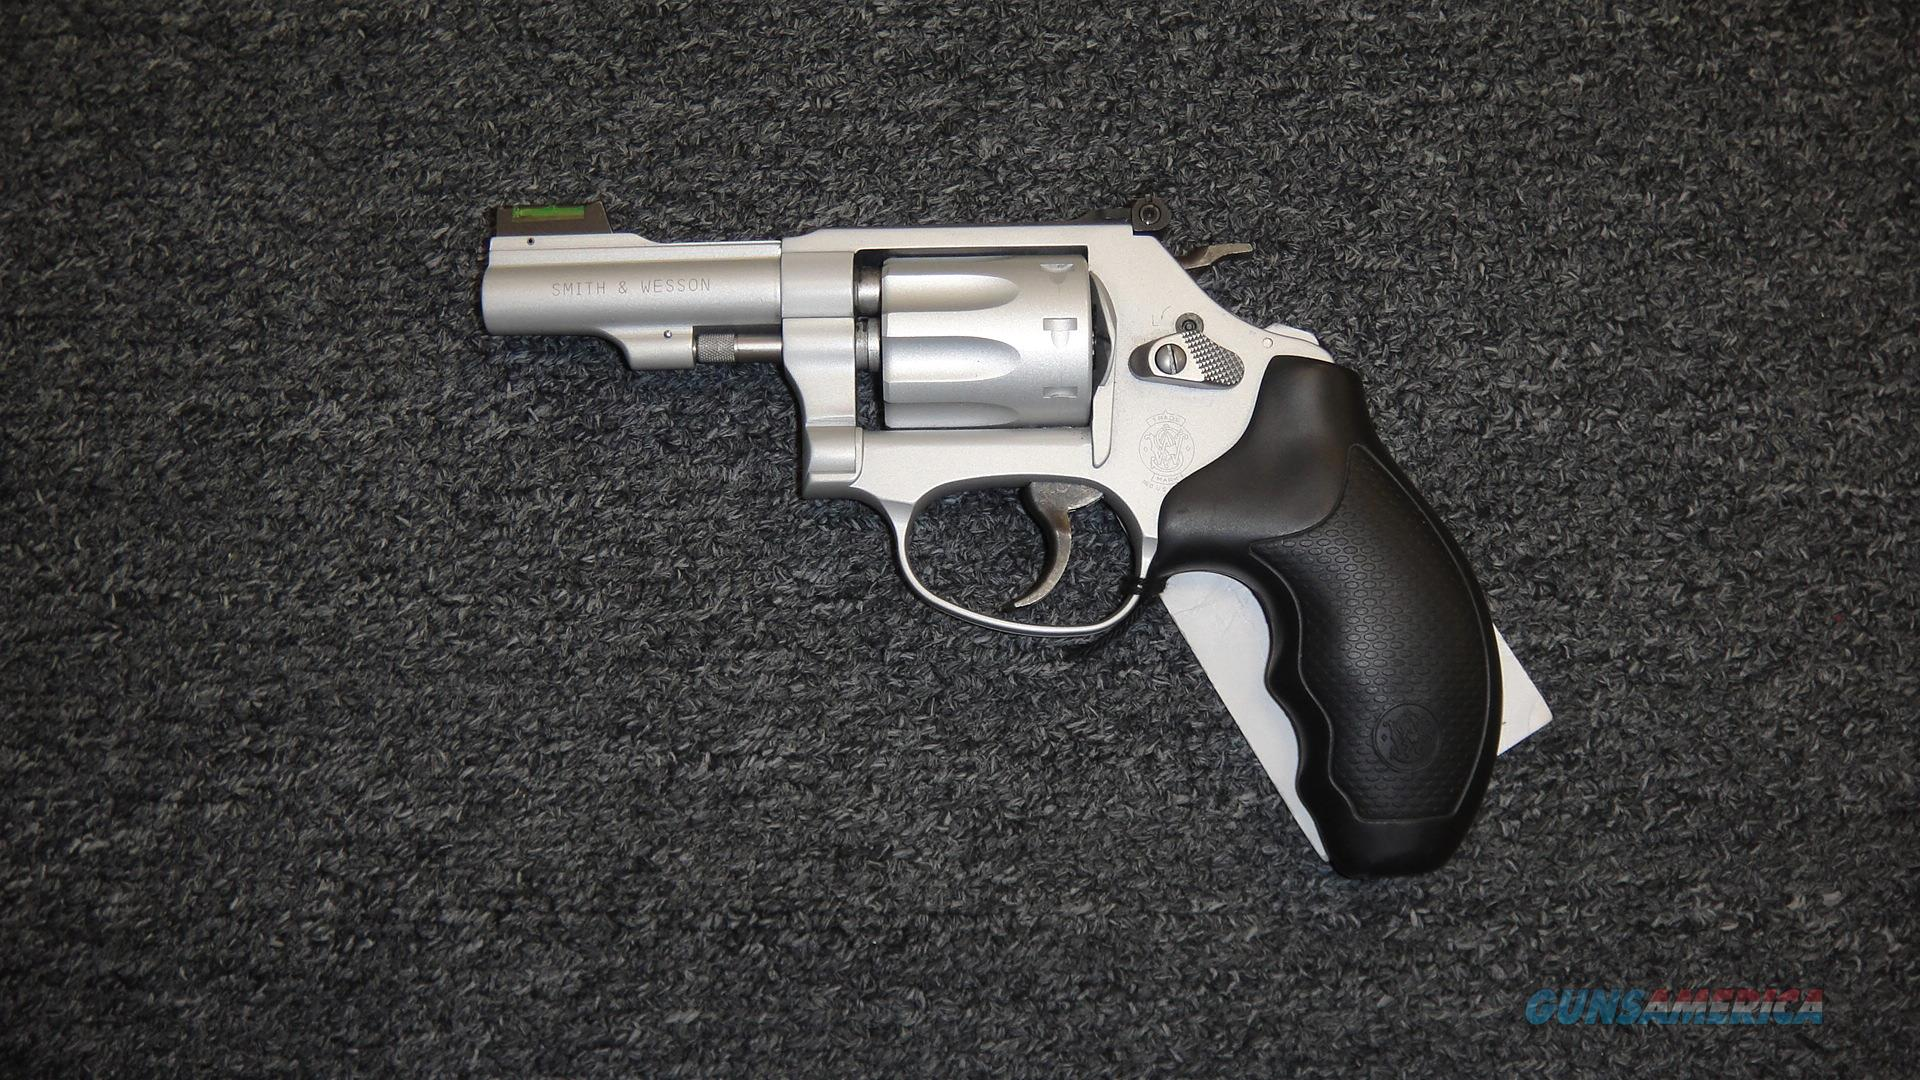 Smith & Wesson 317-3 Air Lite Kit Gun .22LR  Guns > Pistols > Smith & Wesson Revolvers > Small Frame ( J )